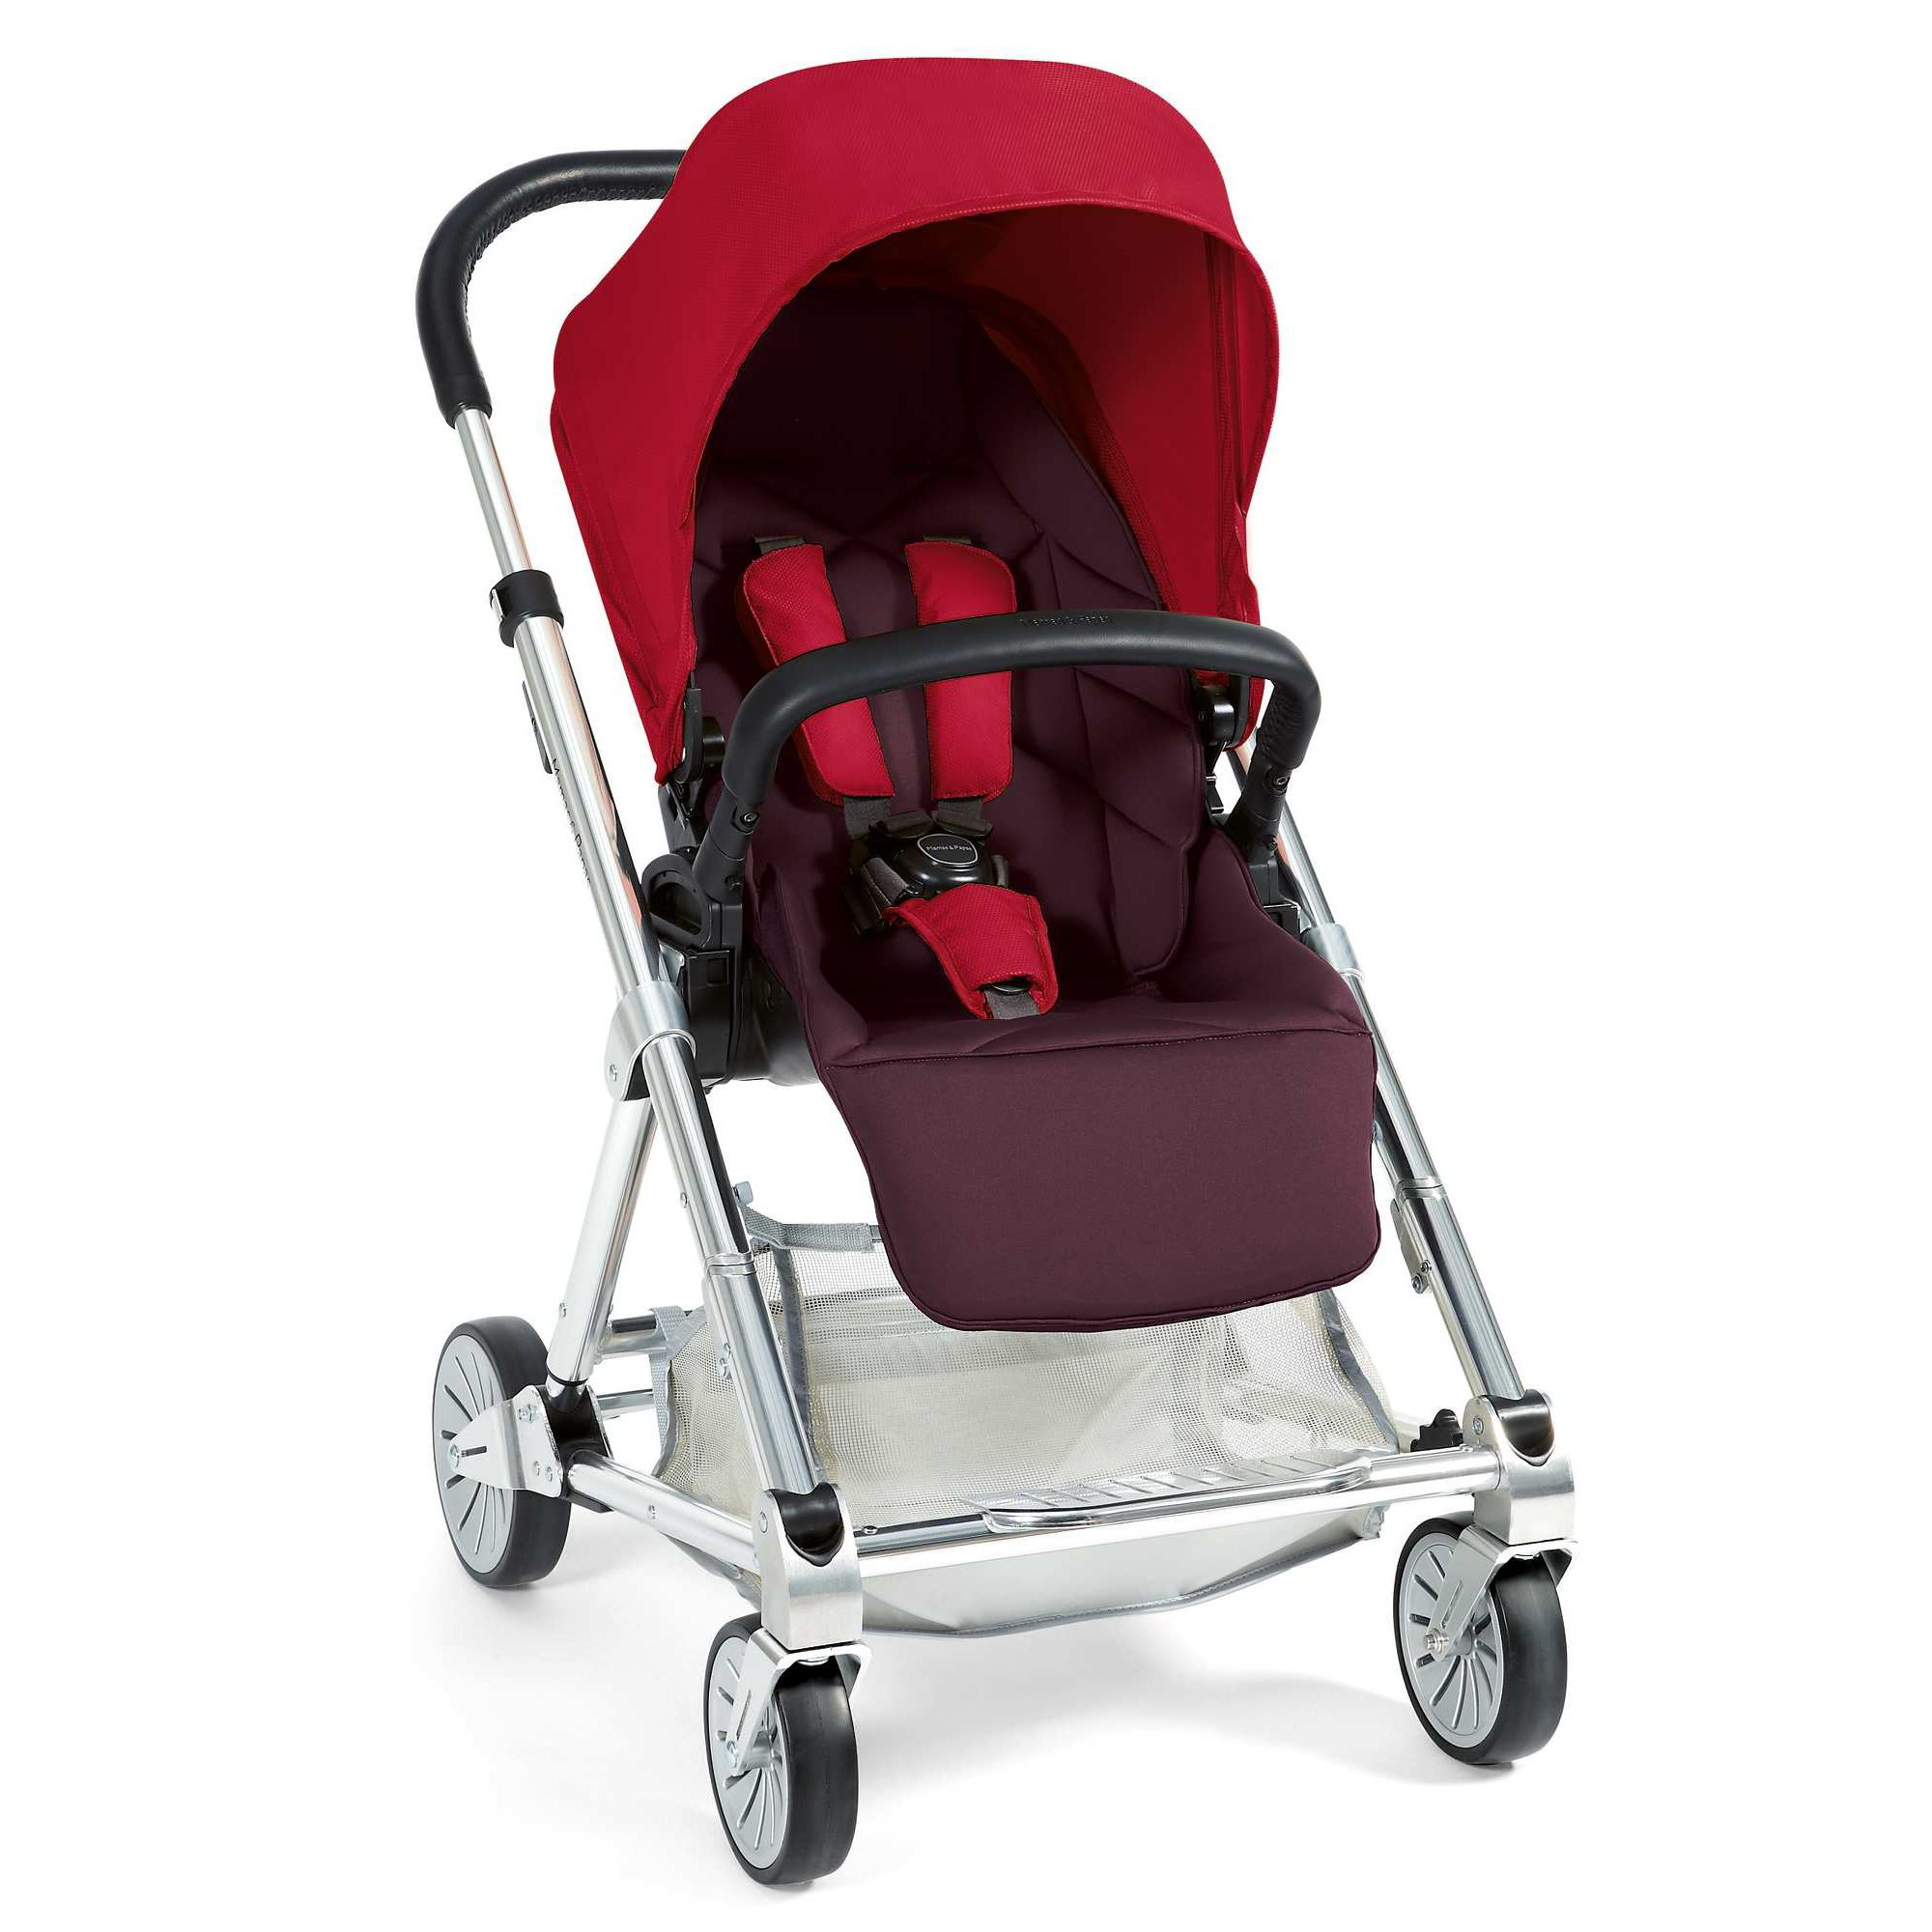 Mamas & Papas - Urbo Pushchair - Red at Tesco Direct